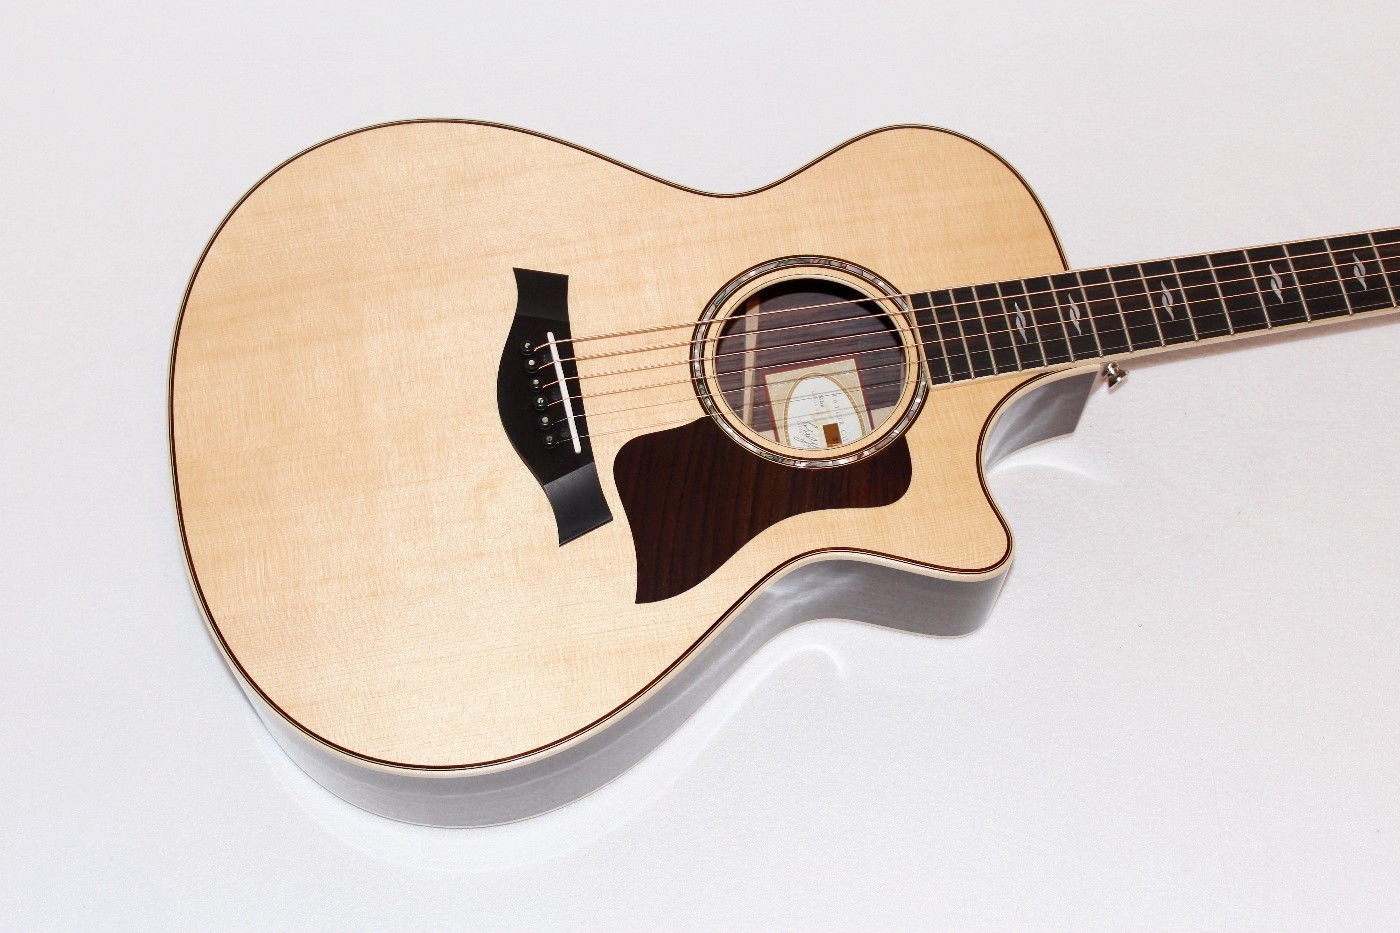 taylor 812ce usa made solid rosewood acoustic electric guitar w case. Black Bedroom Furniture Sets. Home Design Ideas